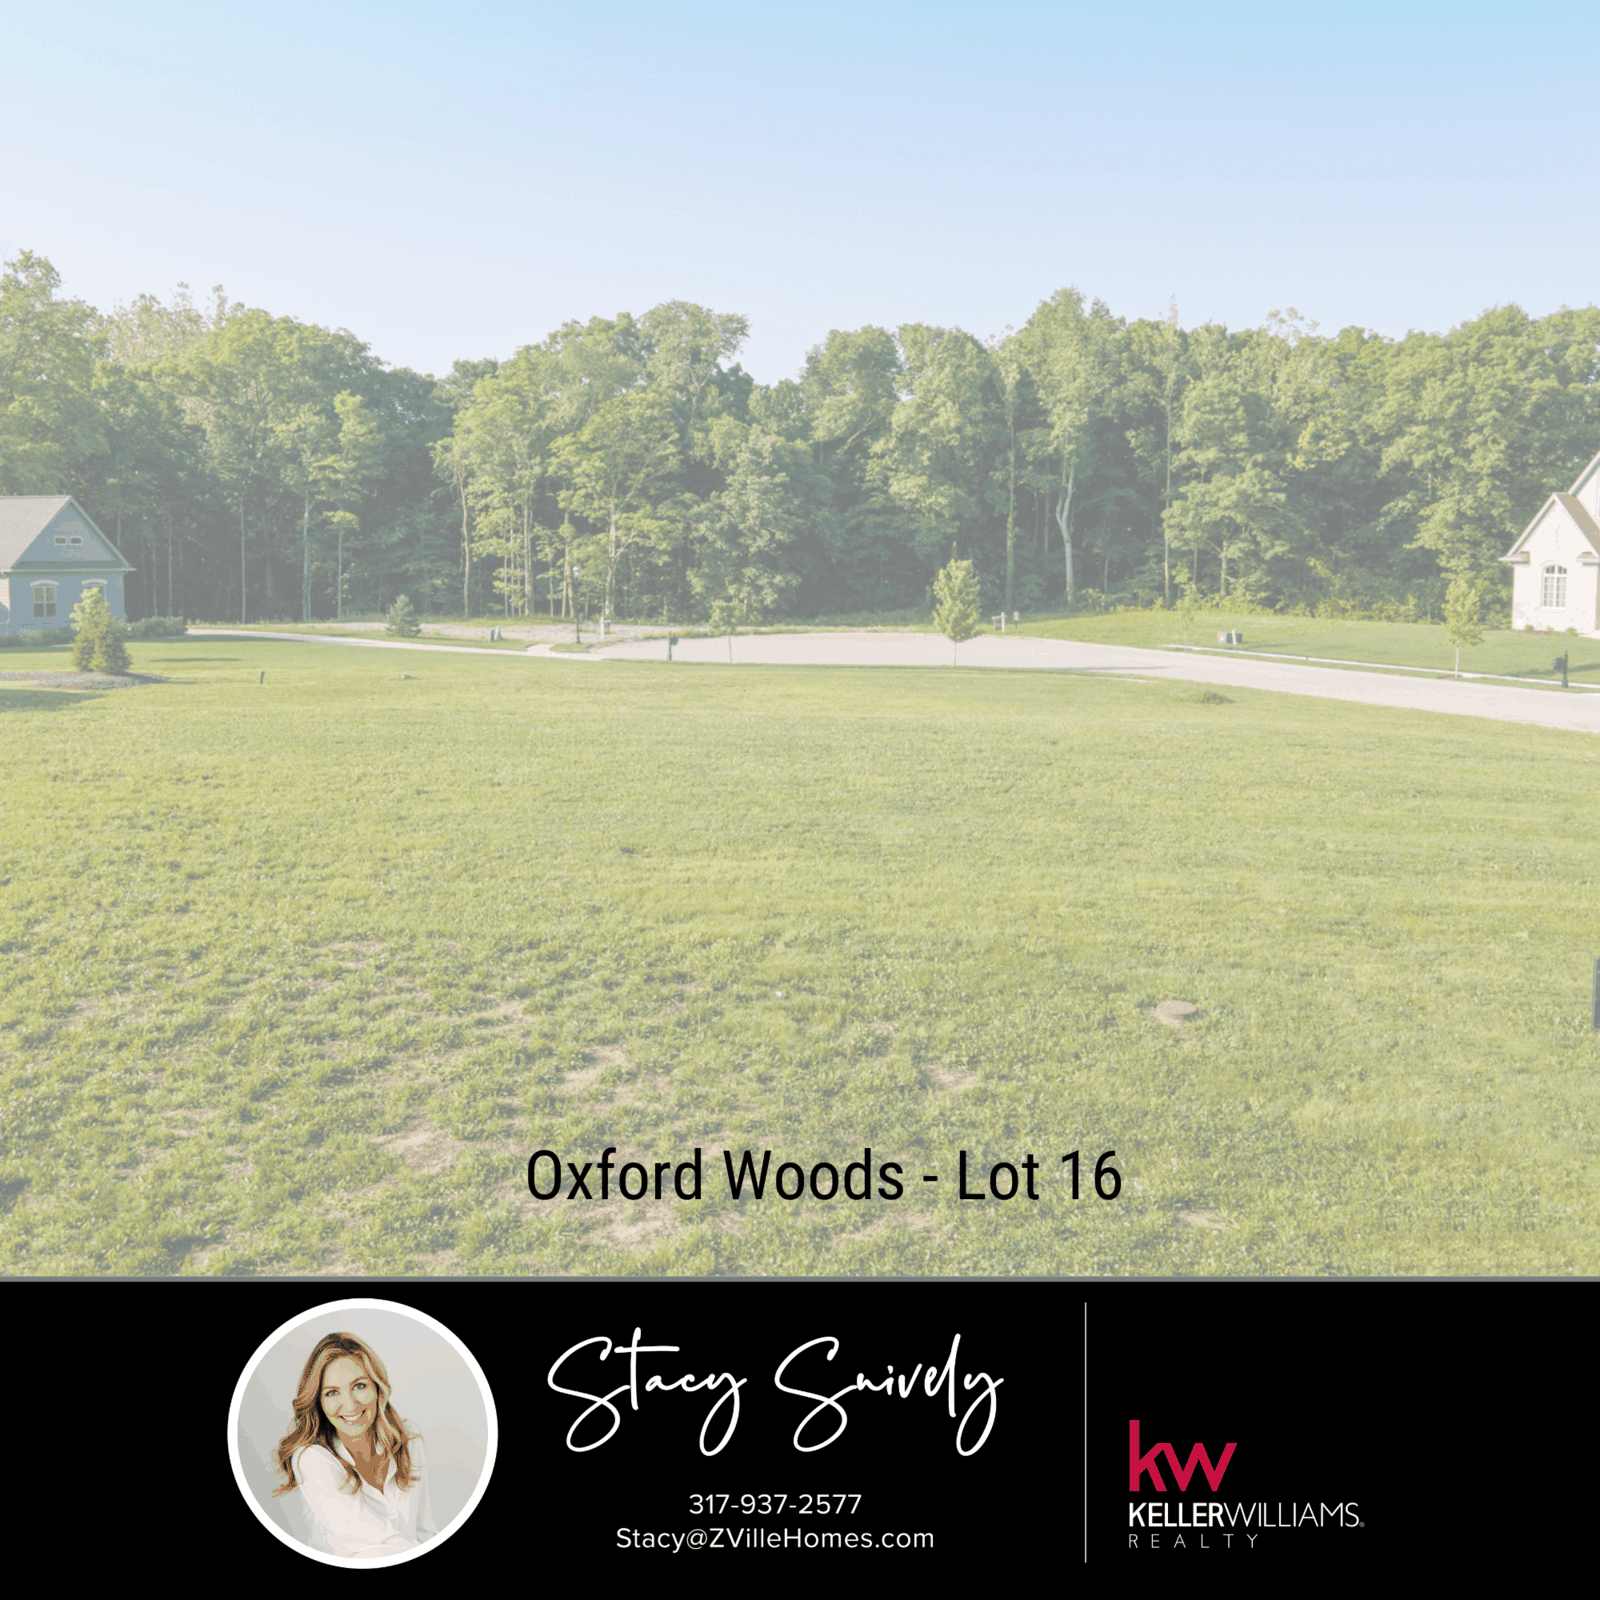 Oxford Woods - Lot 16 - Just Listed